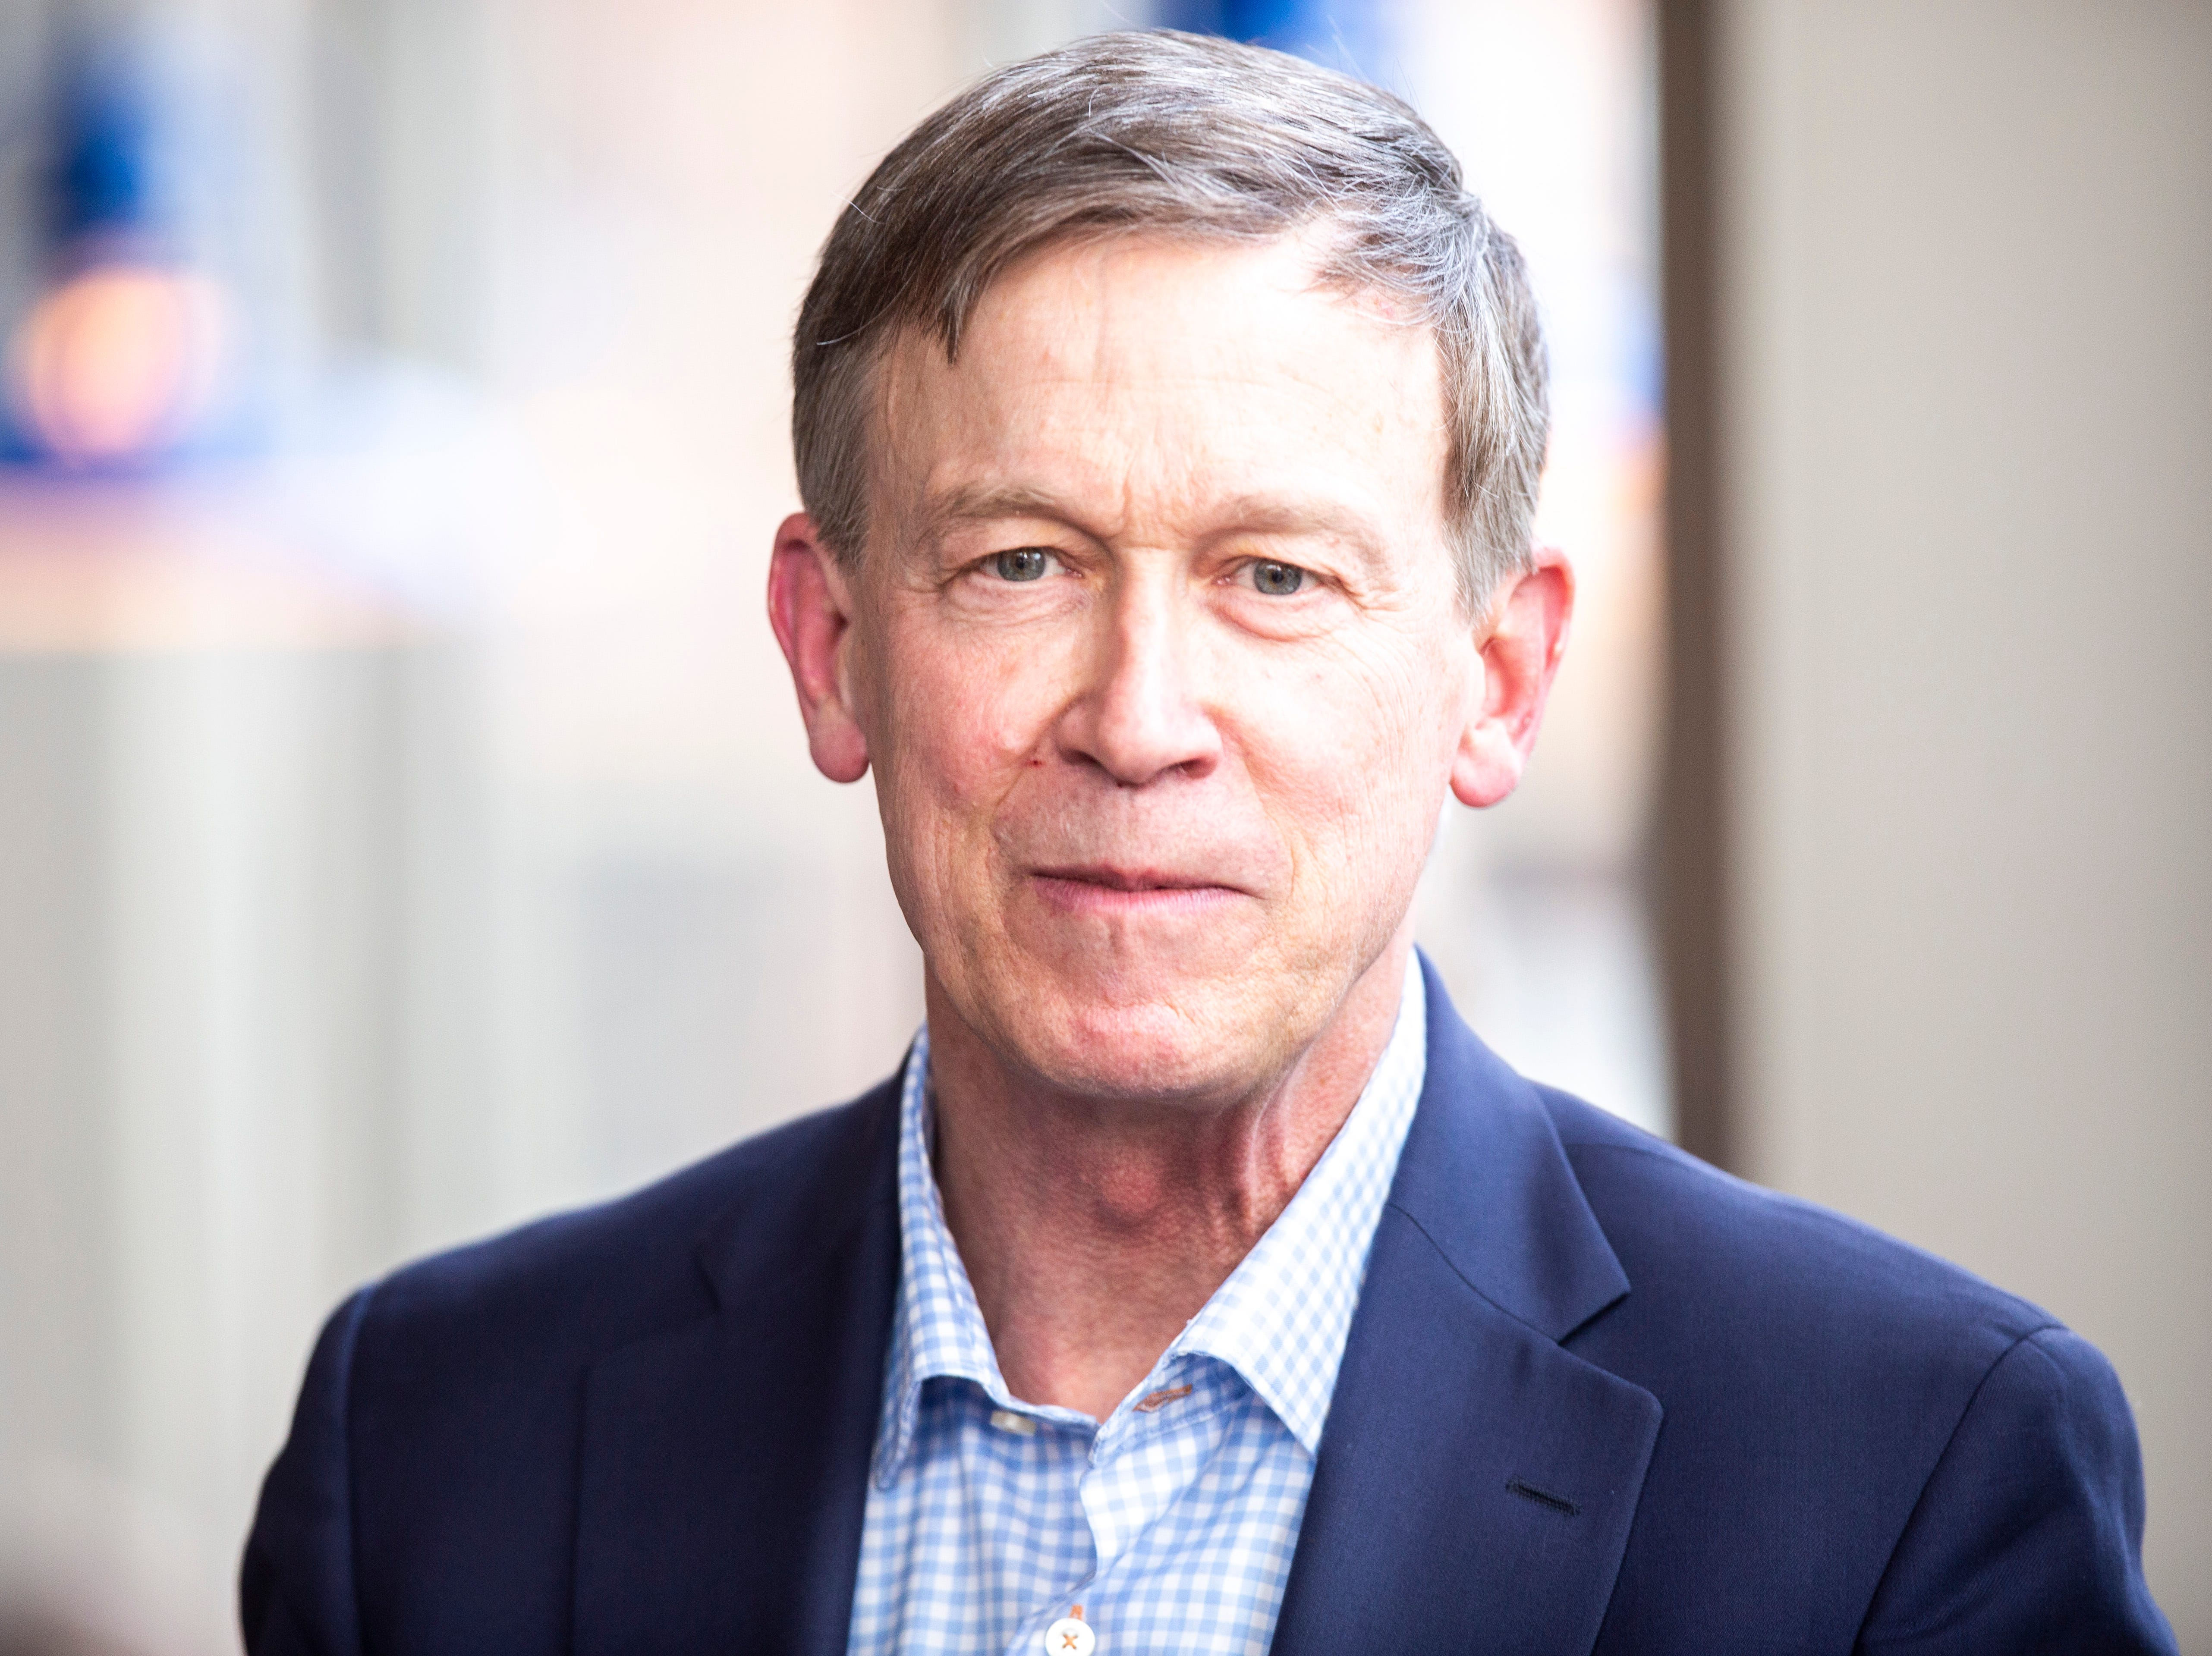 Democratic presidential candidate and former Colorado Gov. John Hickenlooper listens to a question during an event on Friday, April 12, 2019, at Backpocket Brewing in Coralville, Iowa.